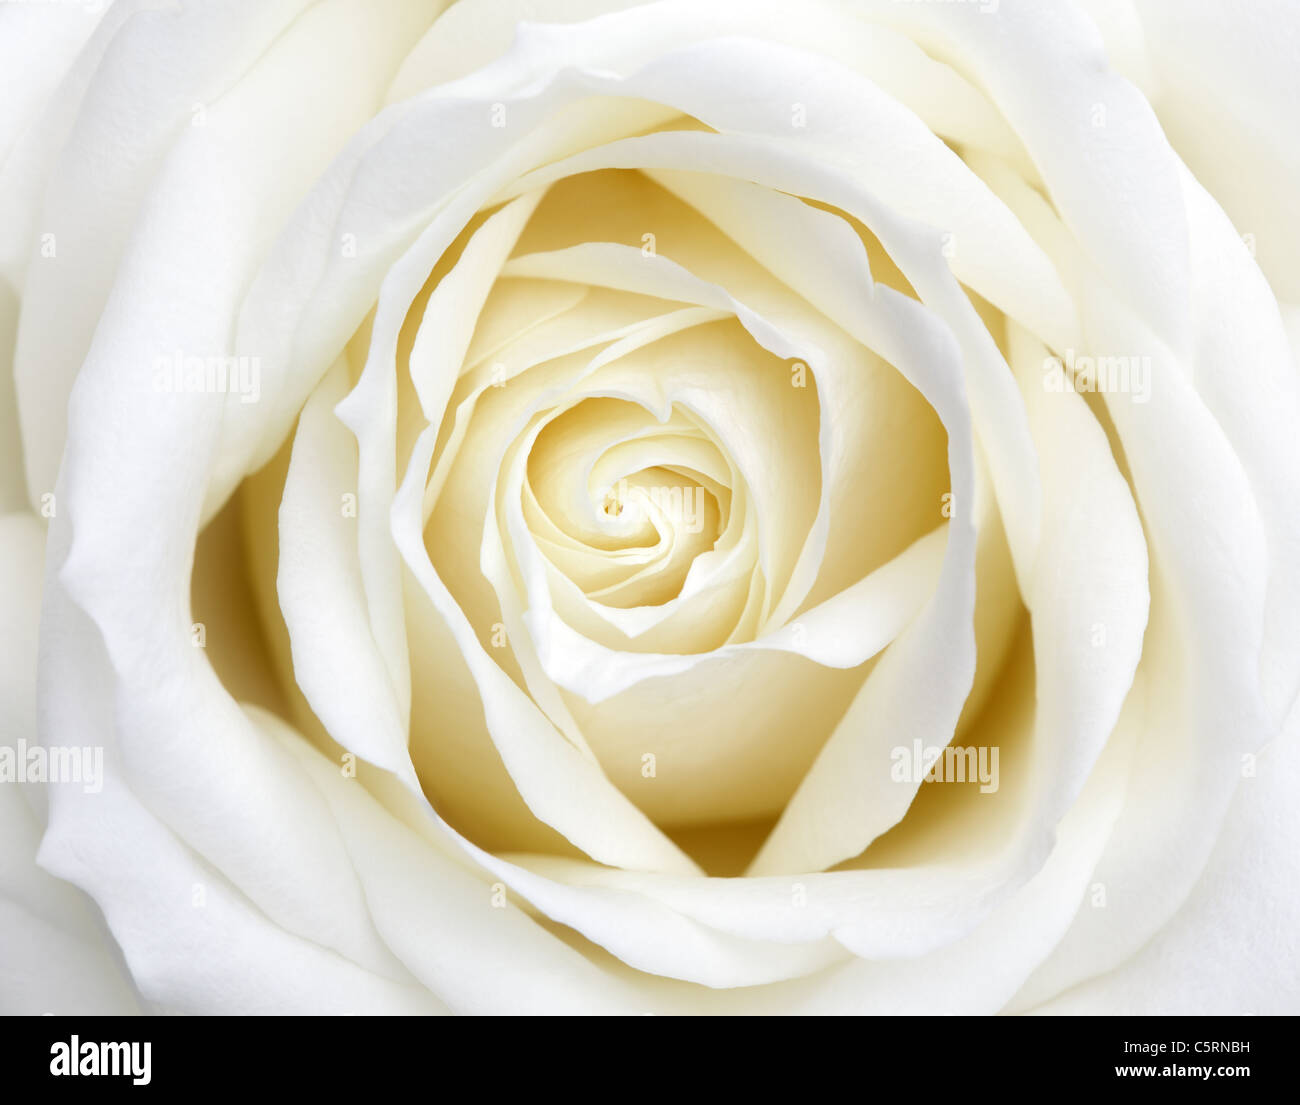 White Rose - Stock Image